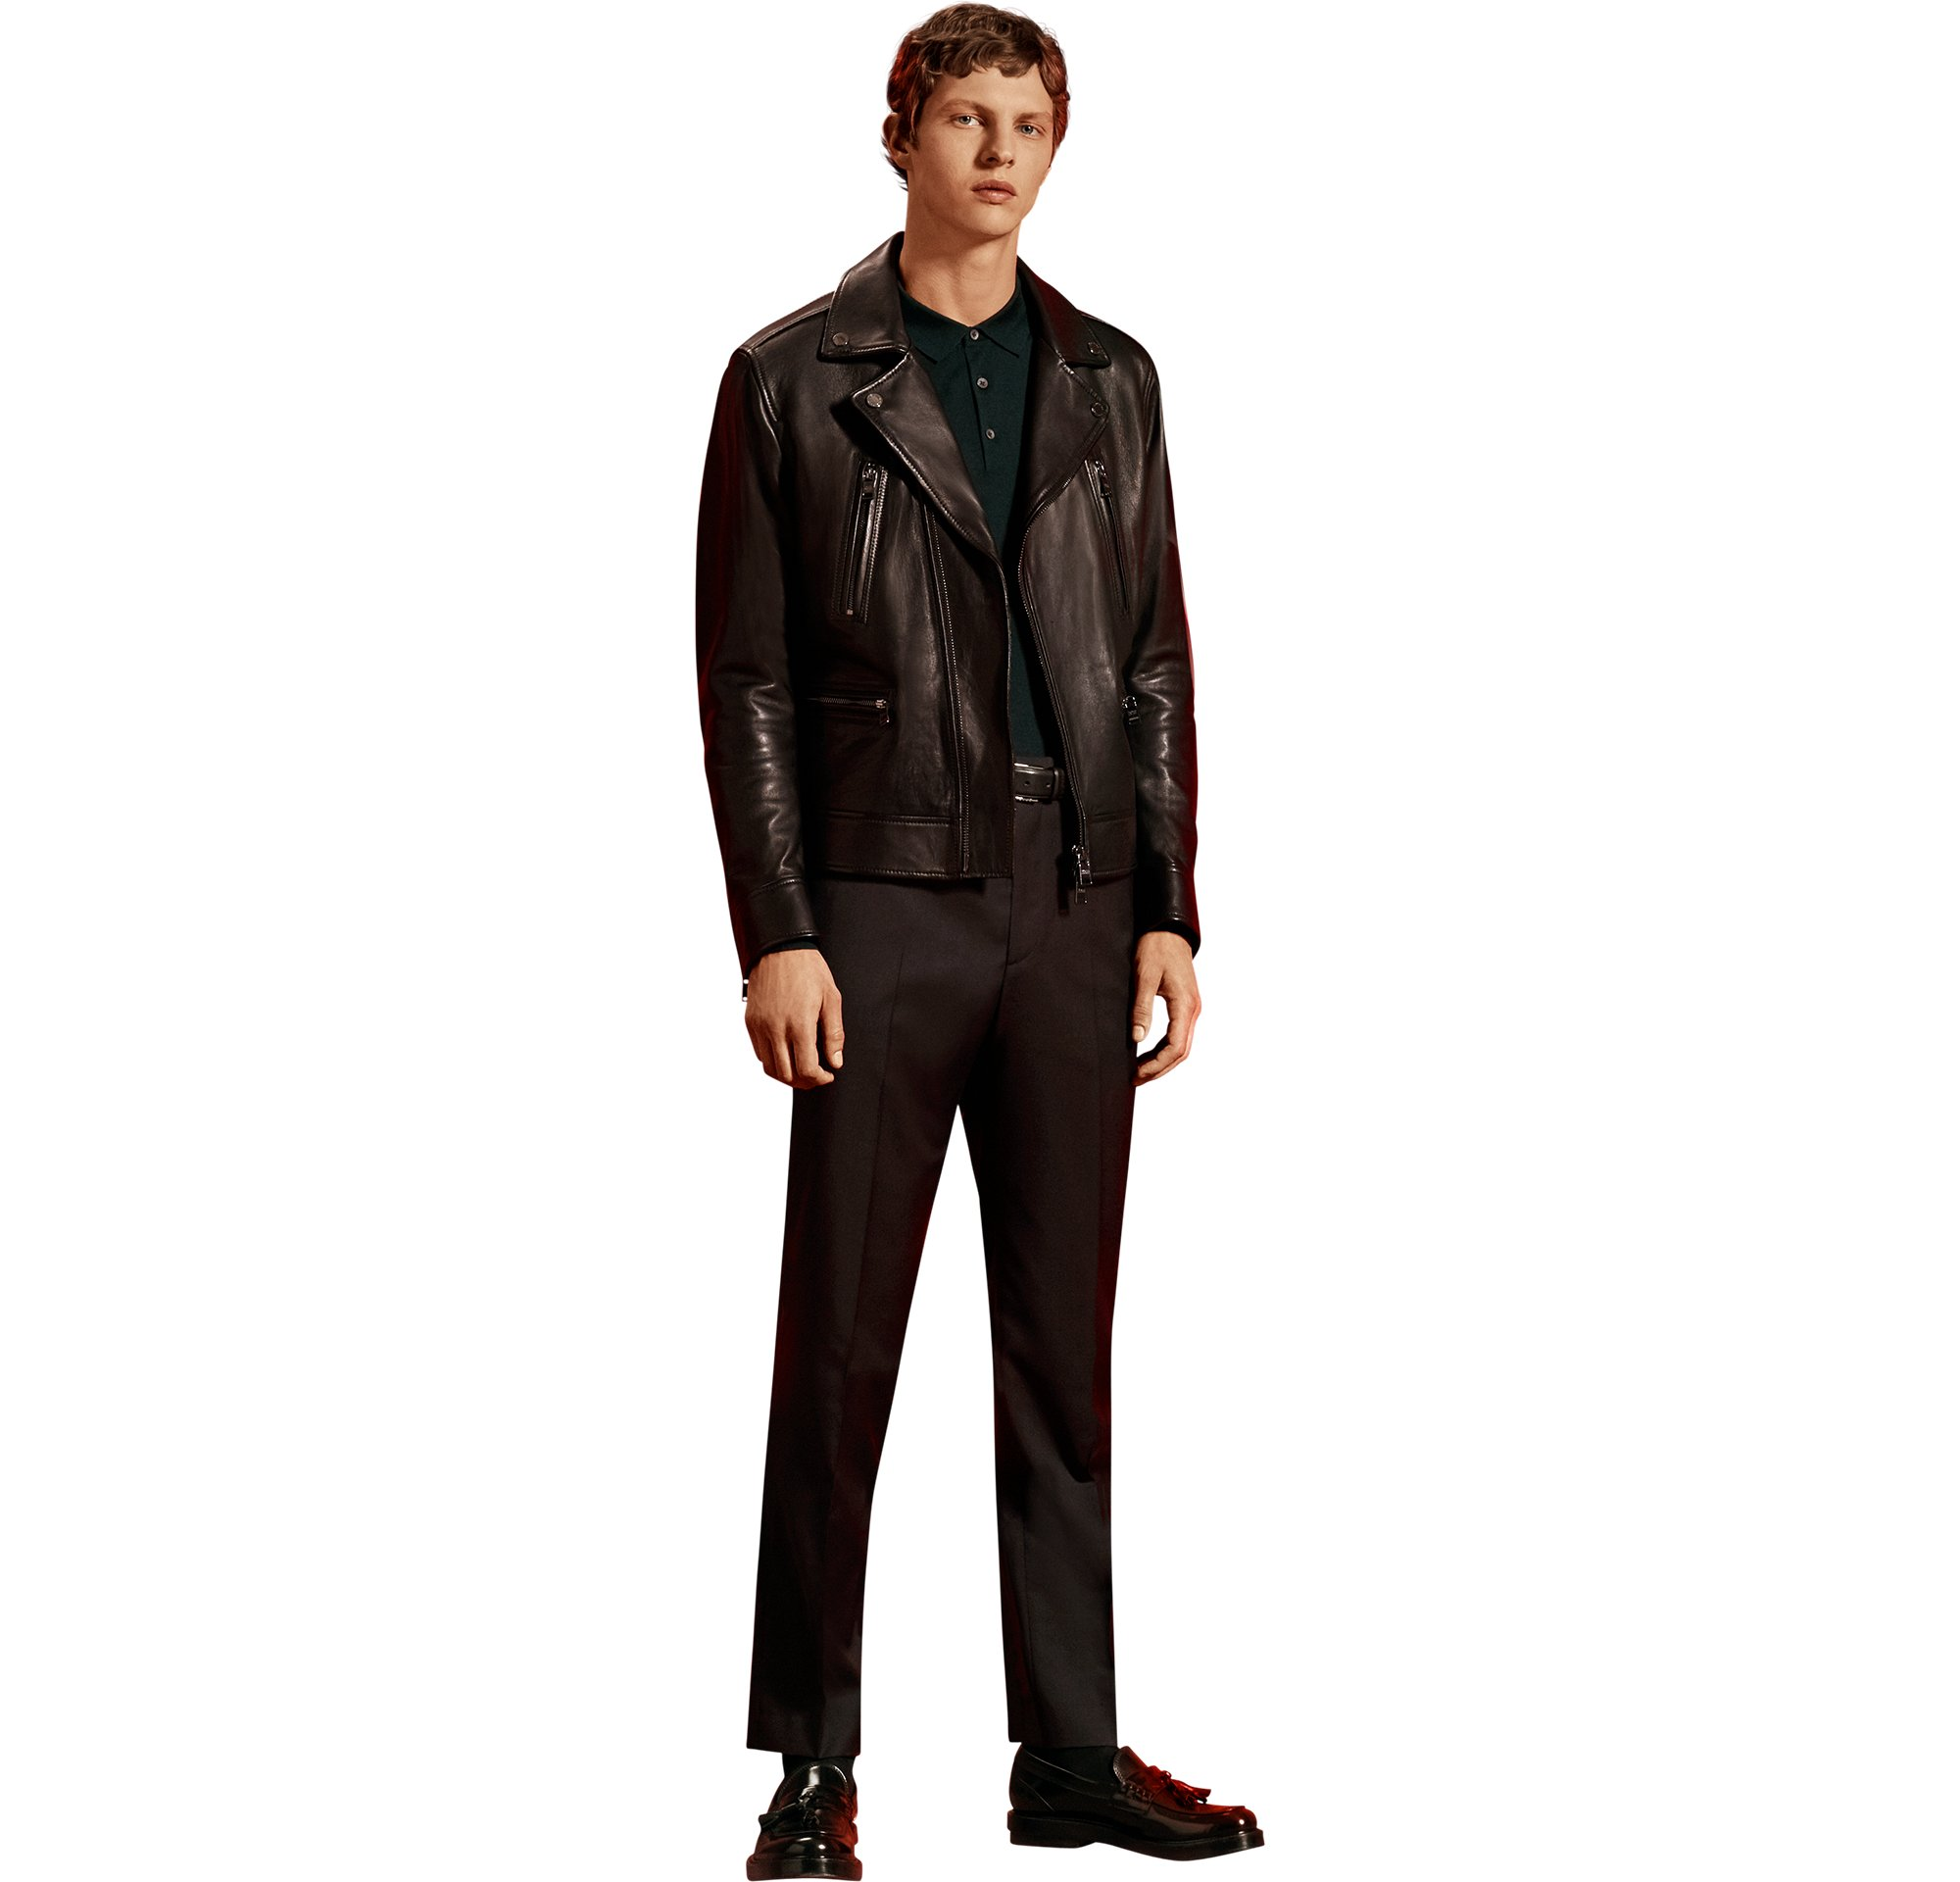 CTG_BOSS_Men_PS18_Look_7,